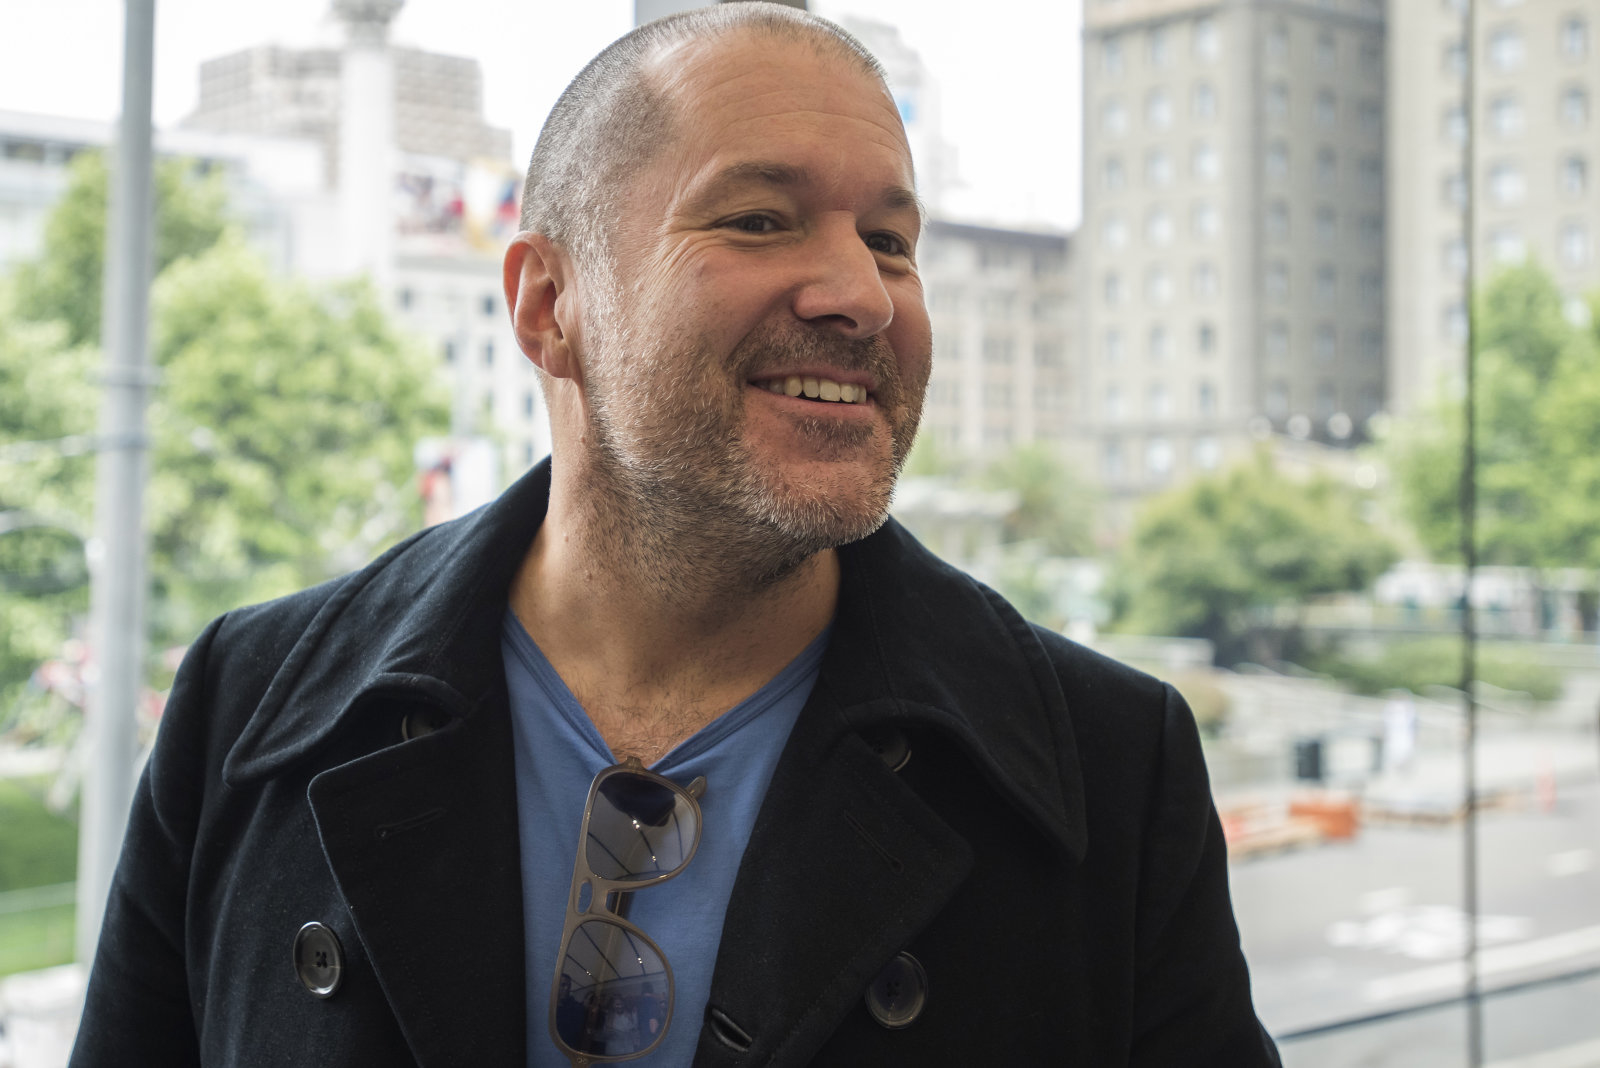 """Jonathan """"Jony"""" Ive, chief design officer for Apple Inc., speaks with attendees during the grand opening of the company's new flagship store at Union Square in San Francisco, California, U.S., on Saturday, May 21, 2016. The flagship location boasts 40-foot-tall doors opening onto the square and comprises five departments, or what Apple prefers to call """"features."""" Photographer: David Paul Morris/Bloomberg via Getty Images"""